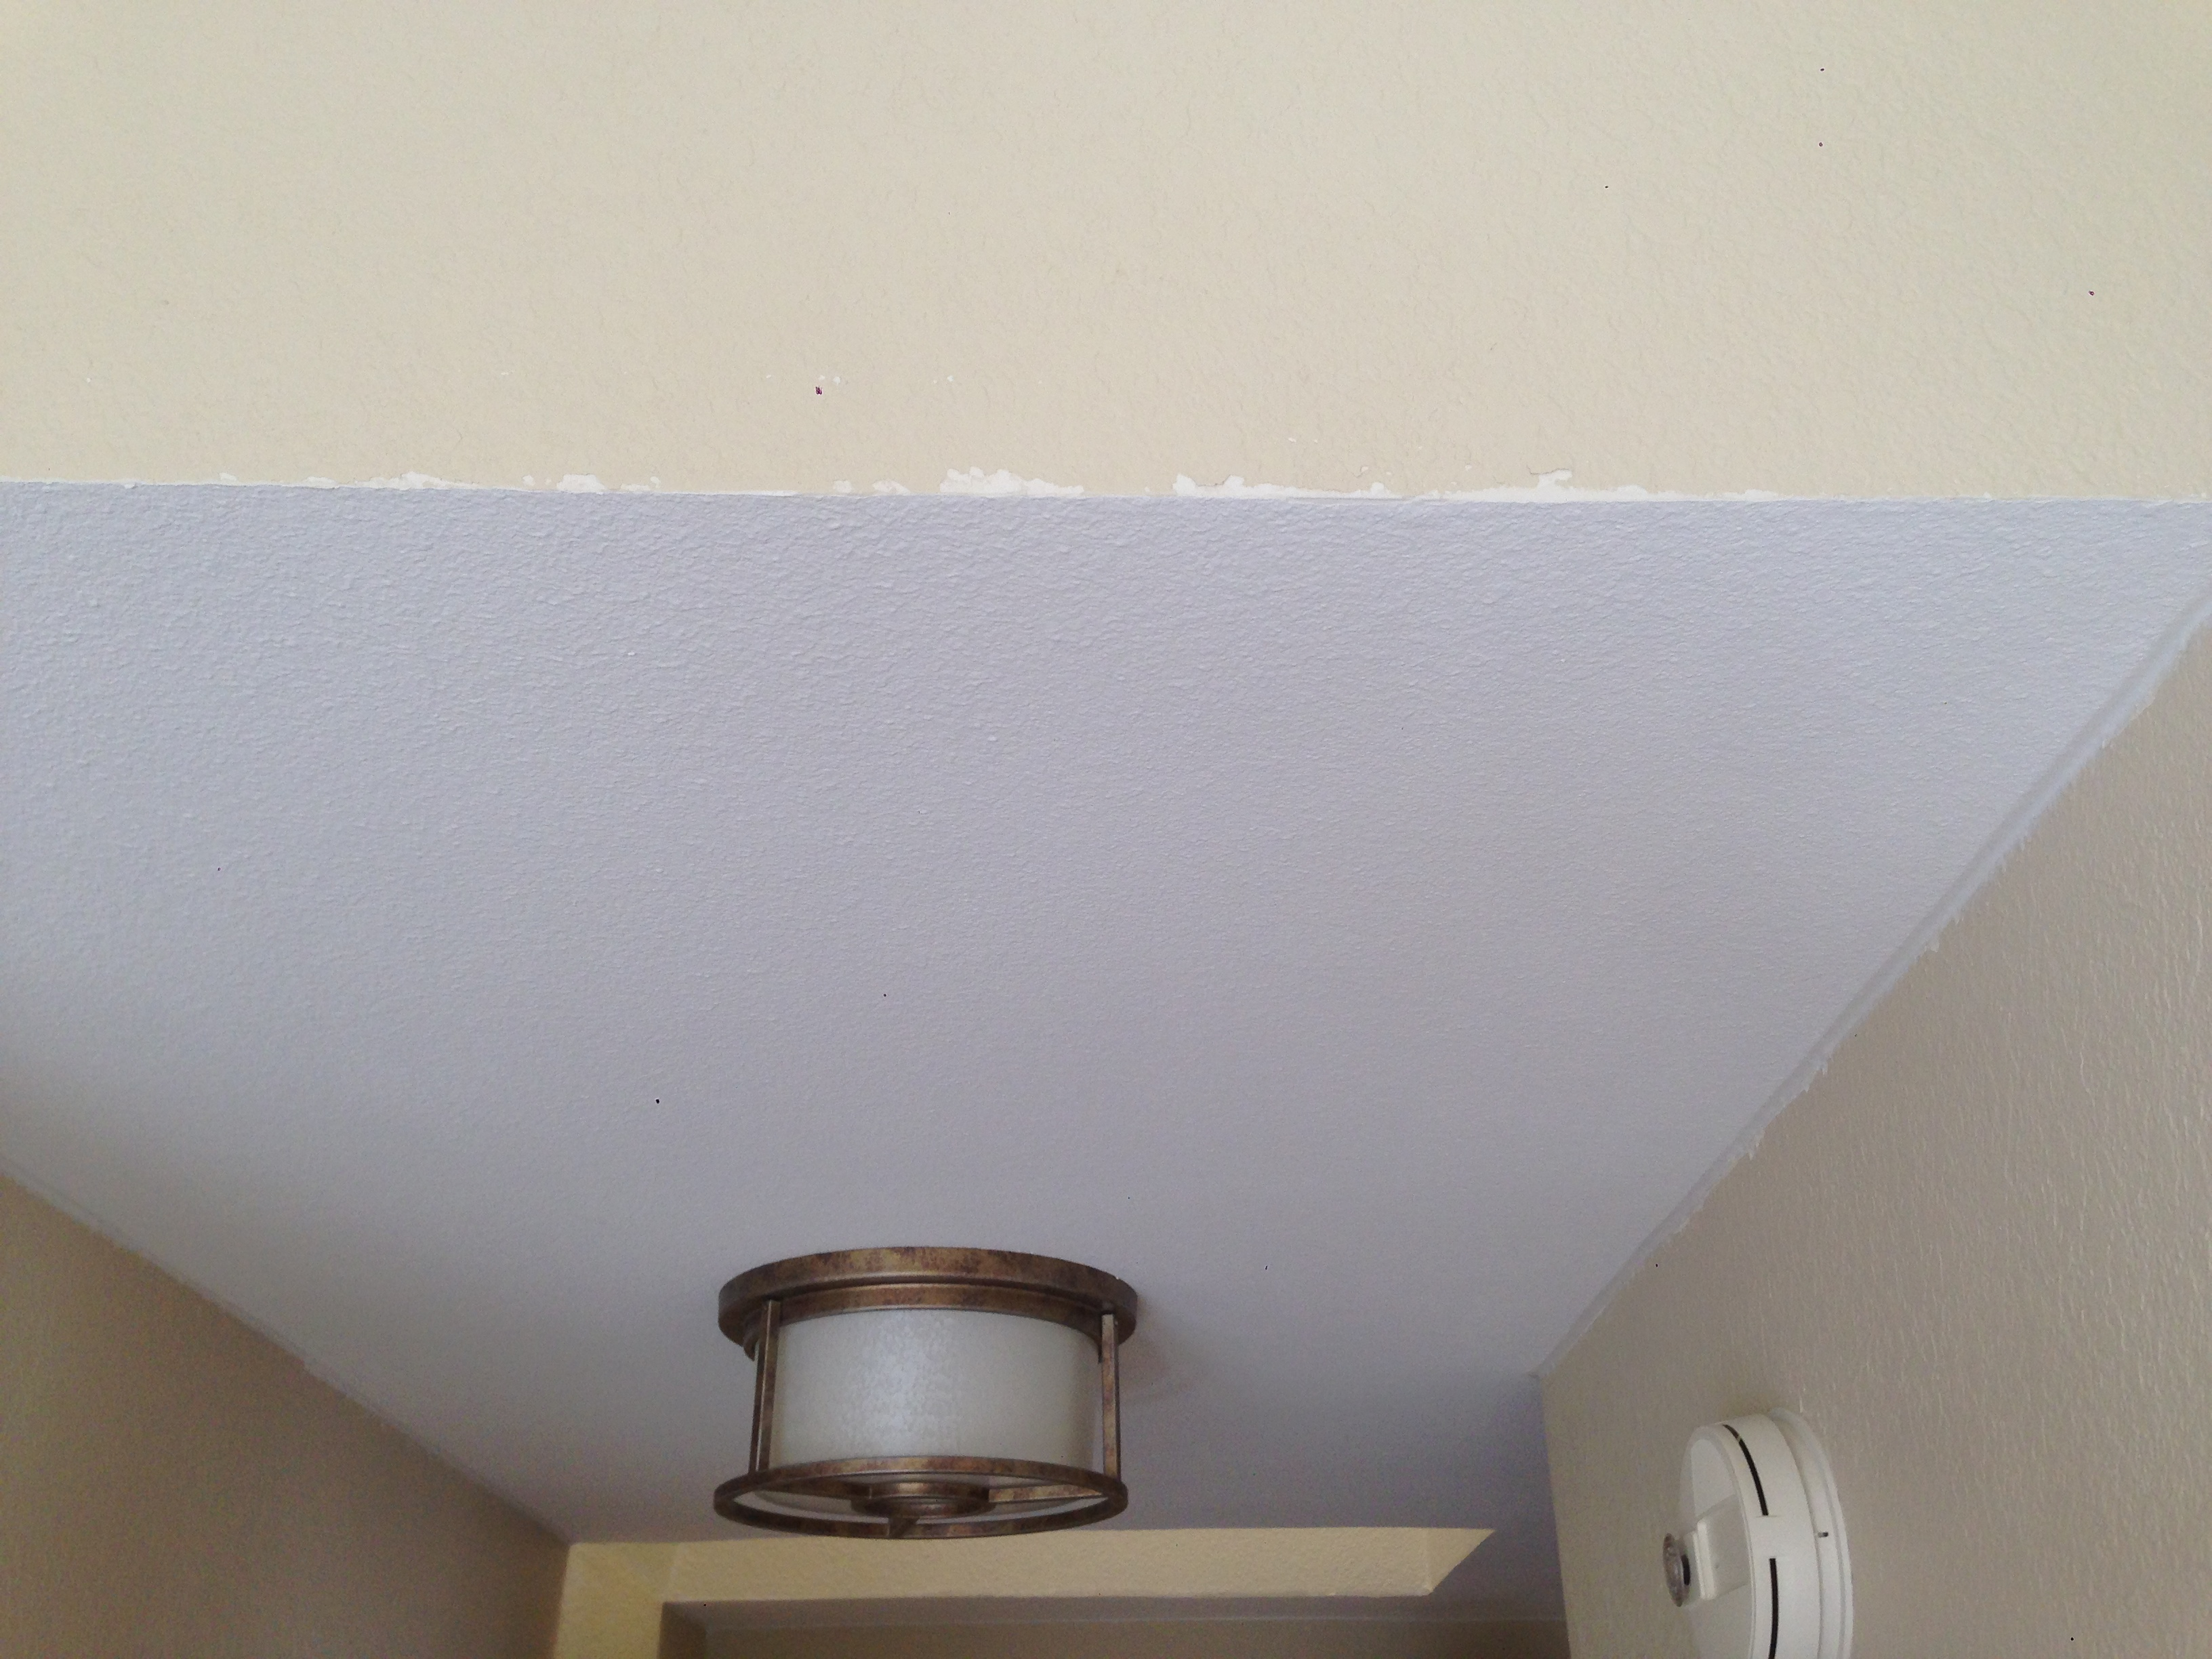 removal southernly inspired ceilings demolition renovation kitchen ceiling popcorn